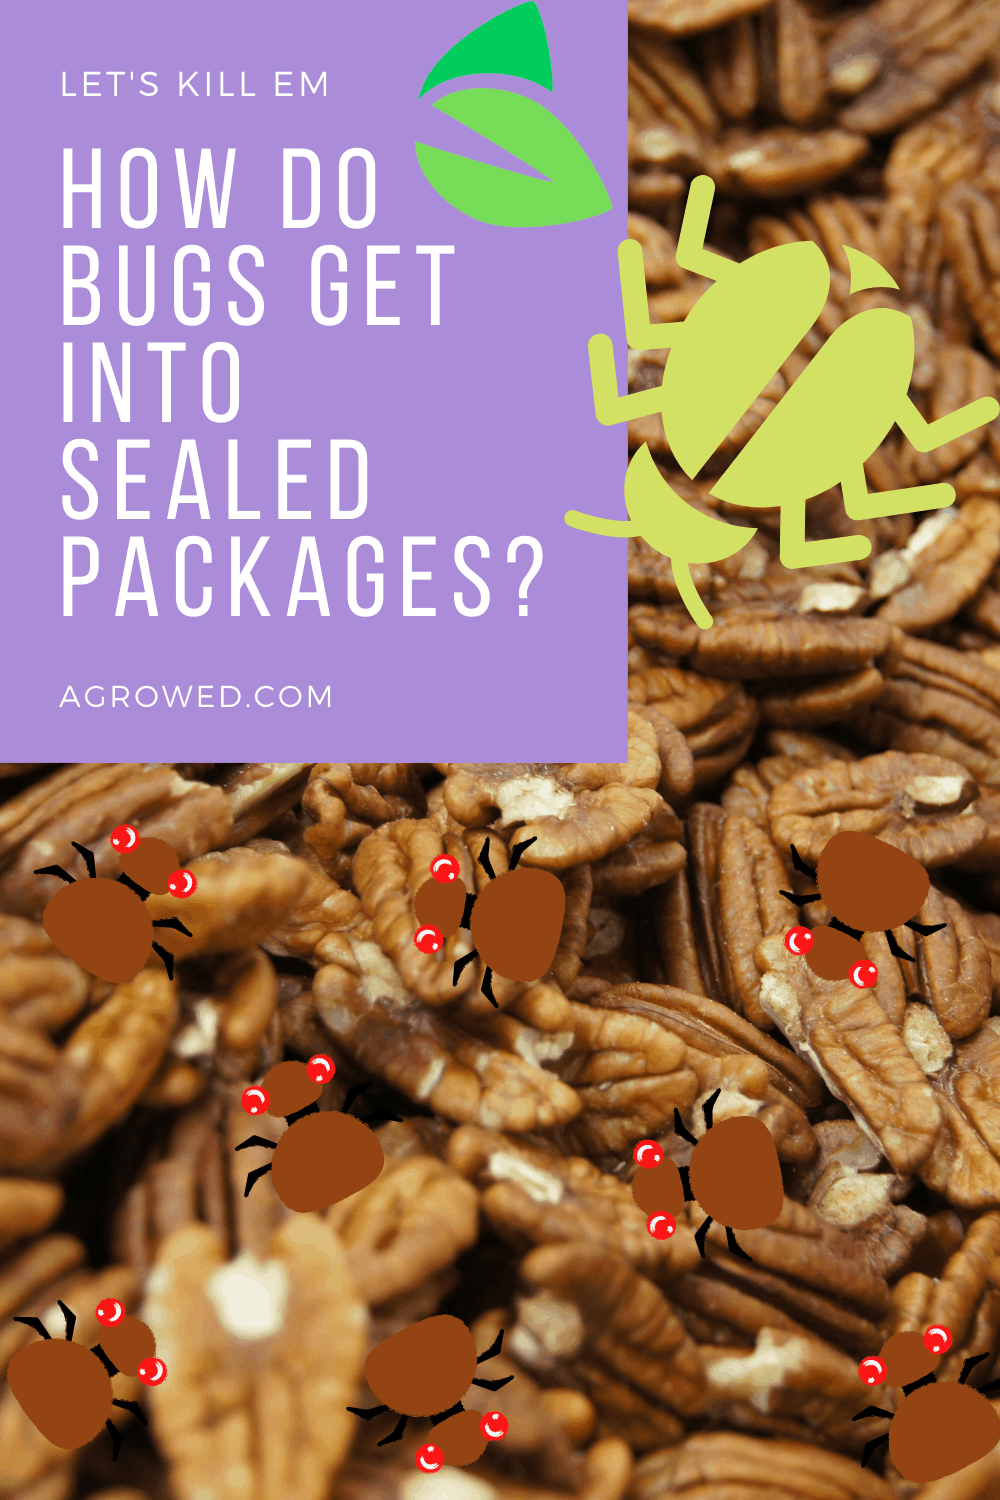 How Do Bugs Get Into Sealed Packages